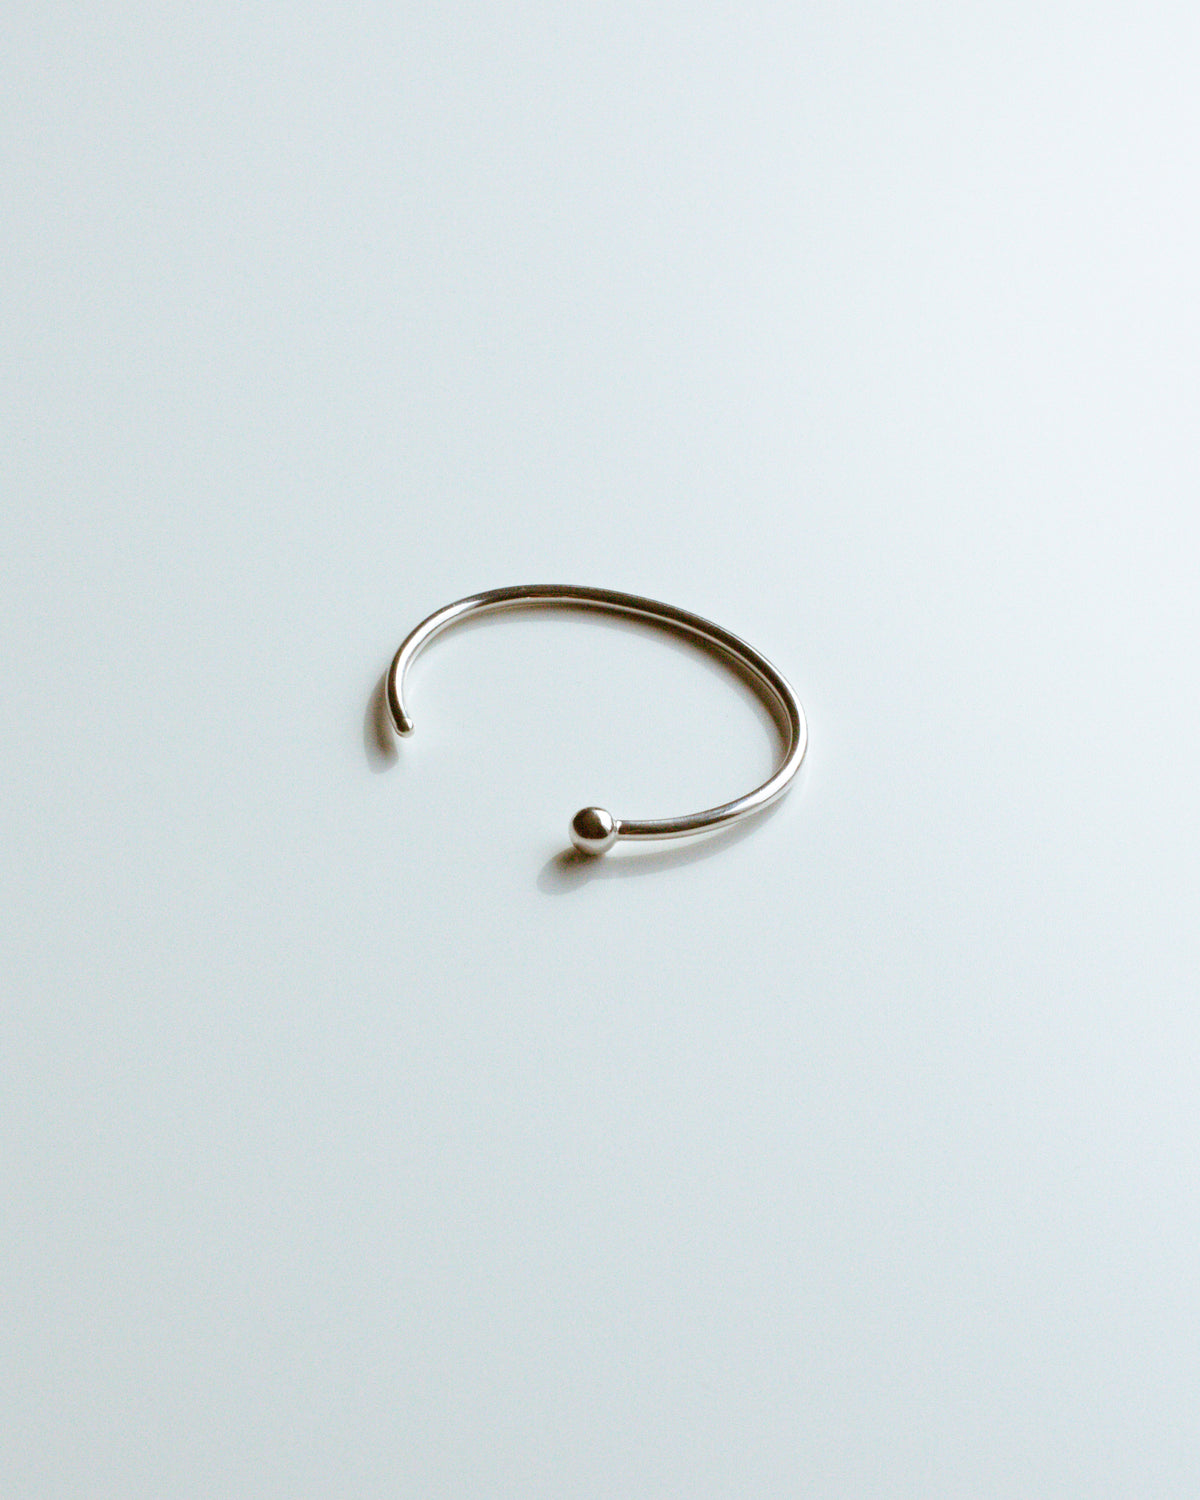 SINGLE BALL BANGLE - Jewelry | THE RIIA